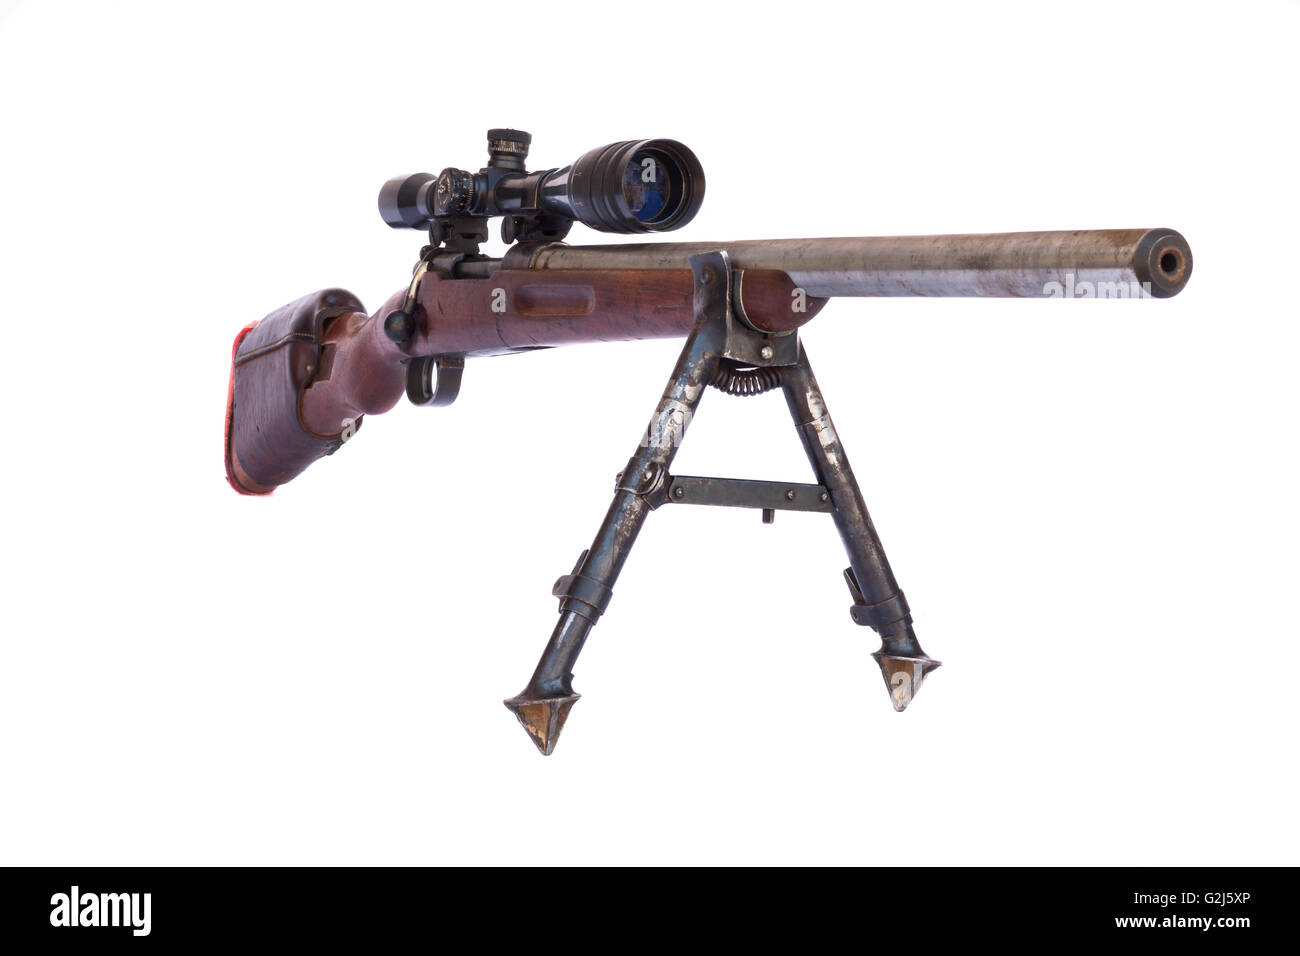 old sniper rifle with scope atached on a tripod isolated on white